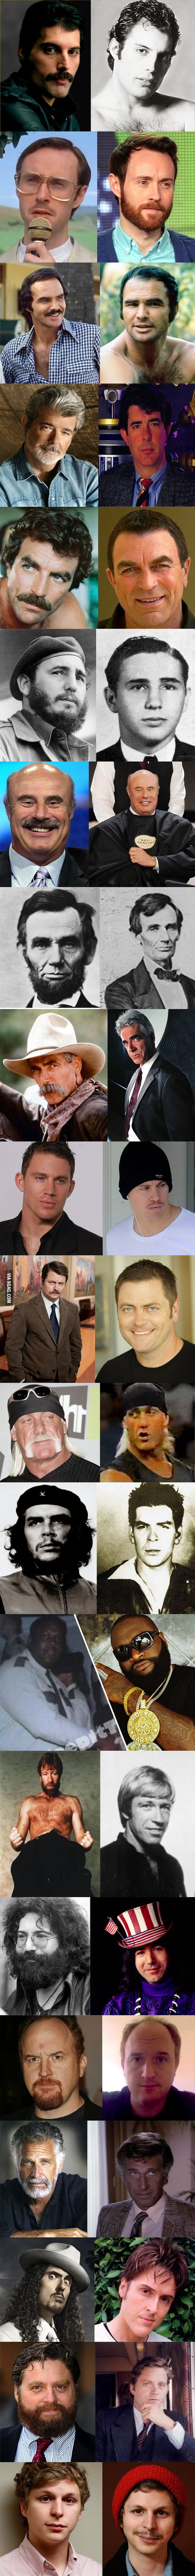 Beards can change everything